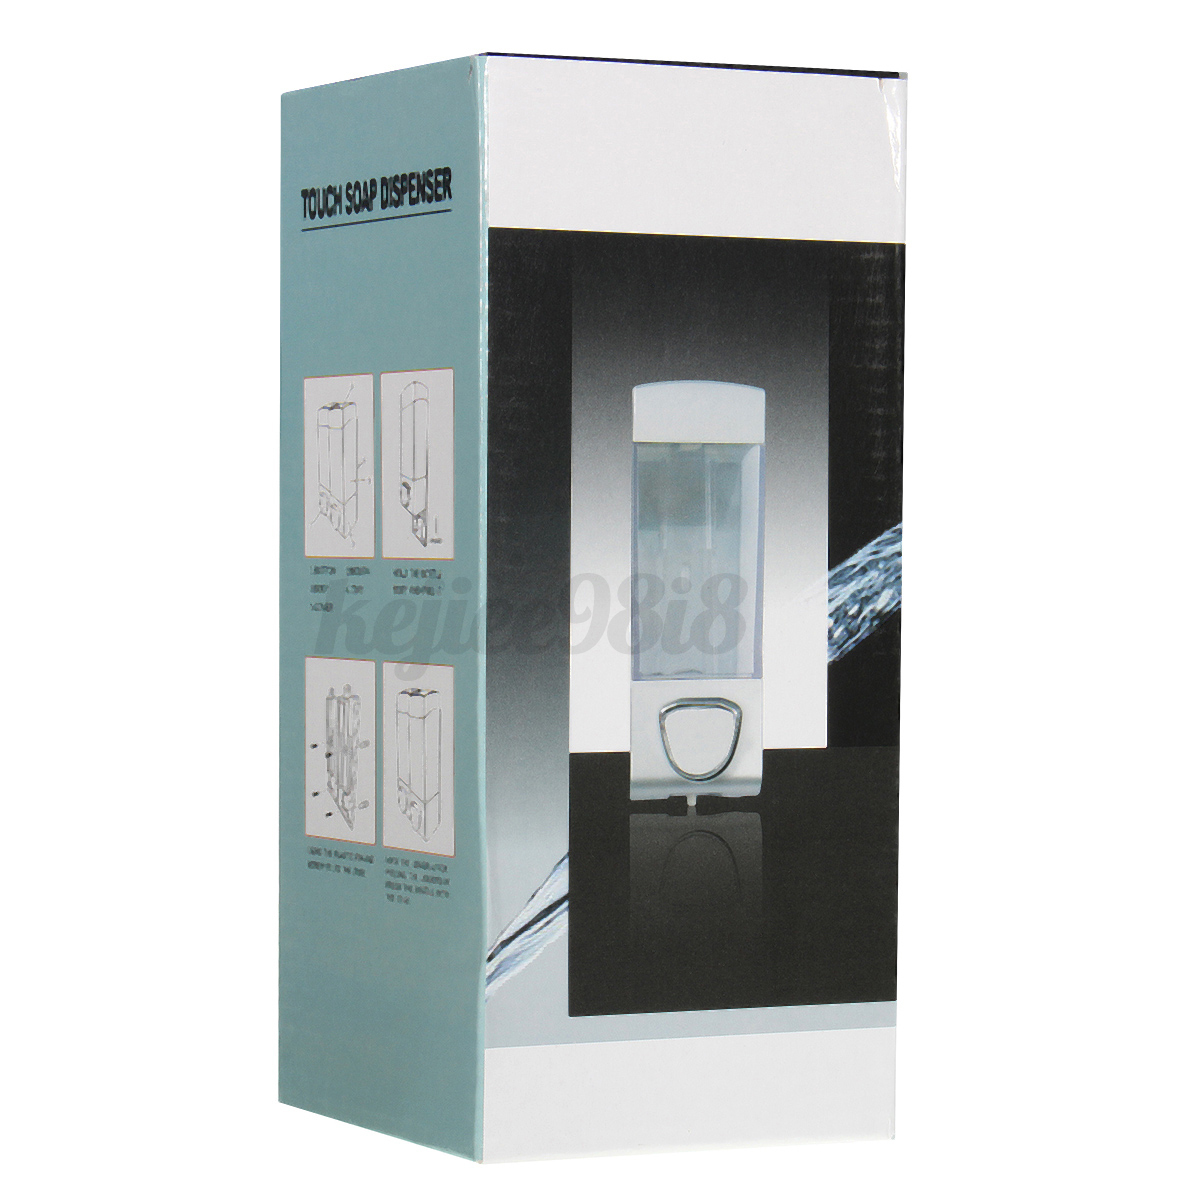 Montaje pared libre dispensador jabon champ jabonera - Dispensador jabon ducha ...